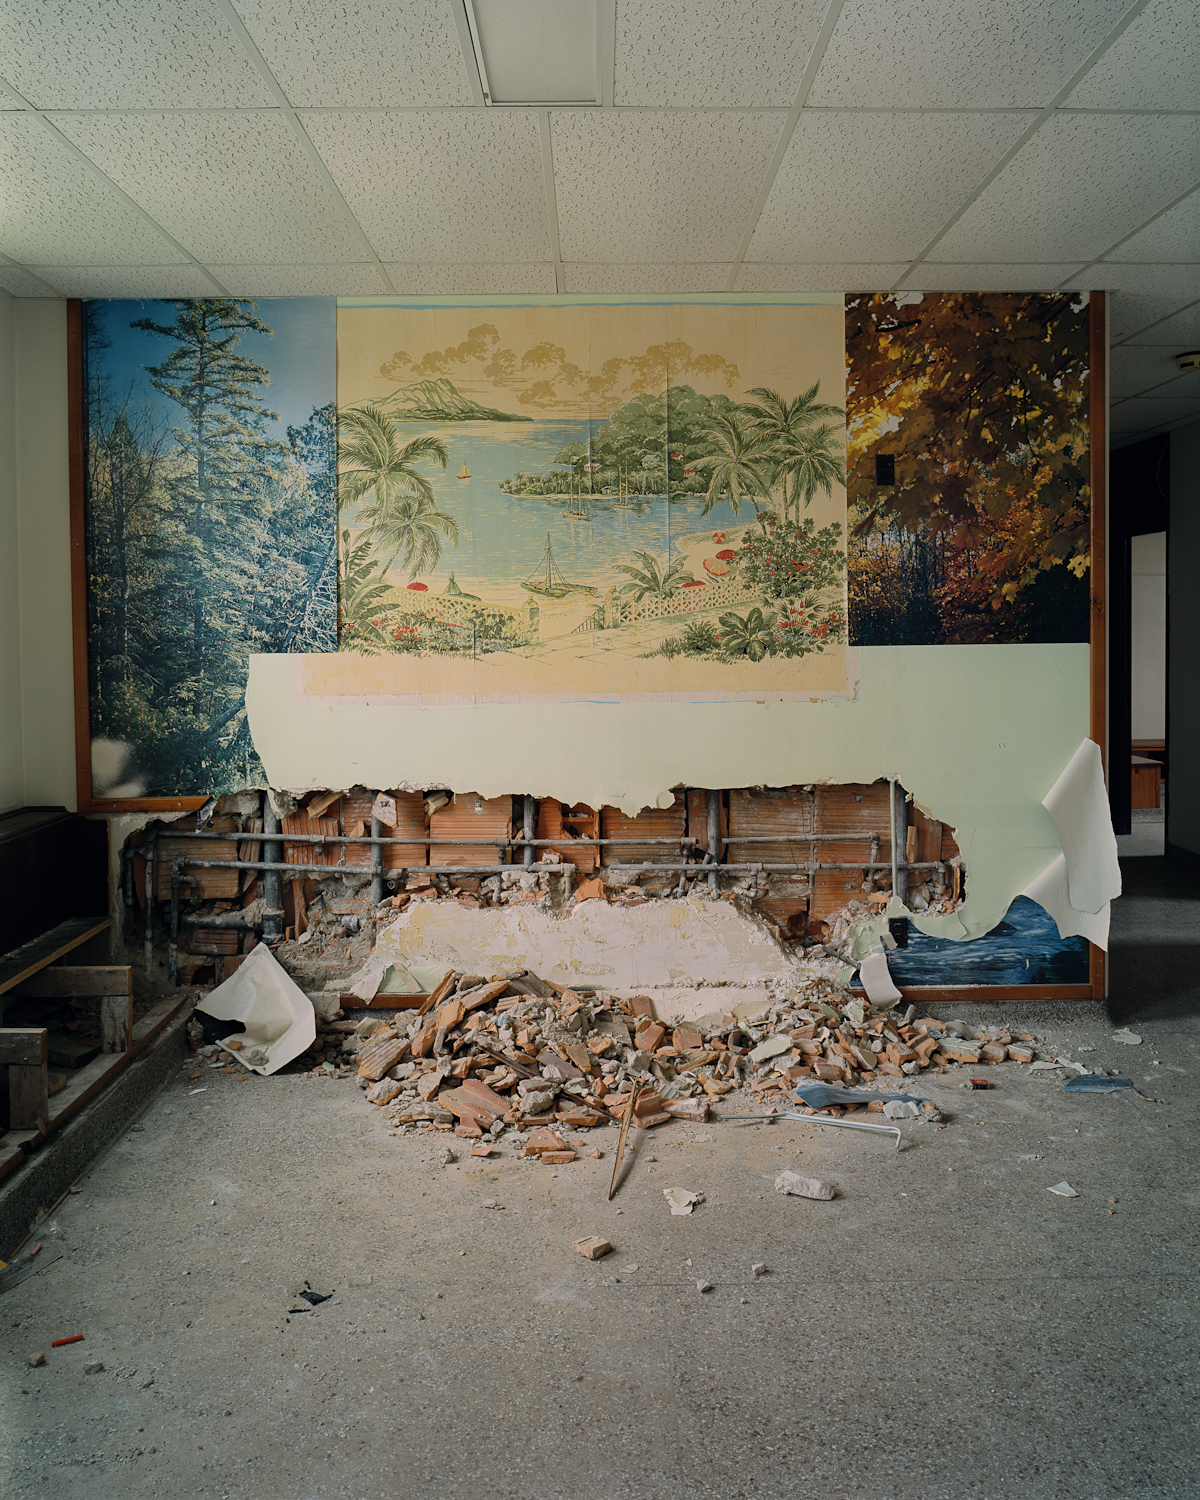 Peeled murals and debris in dayroom, Cottage 4.